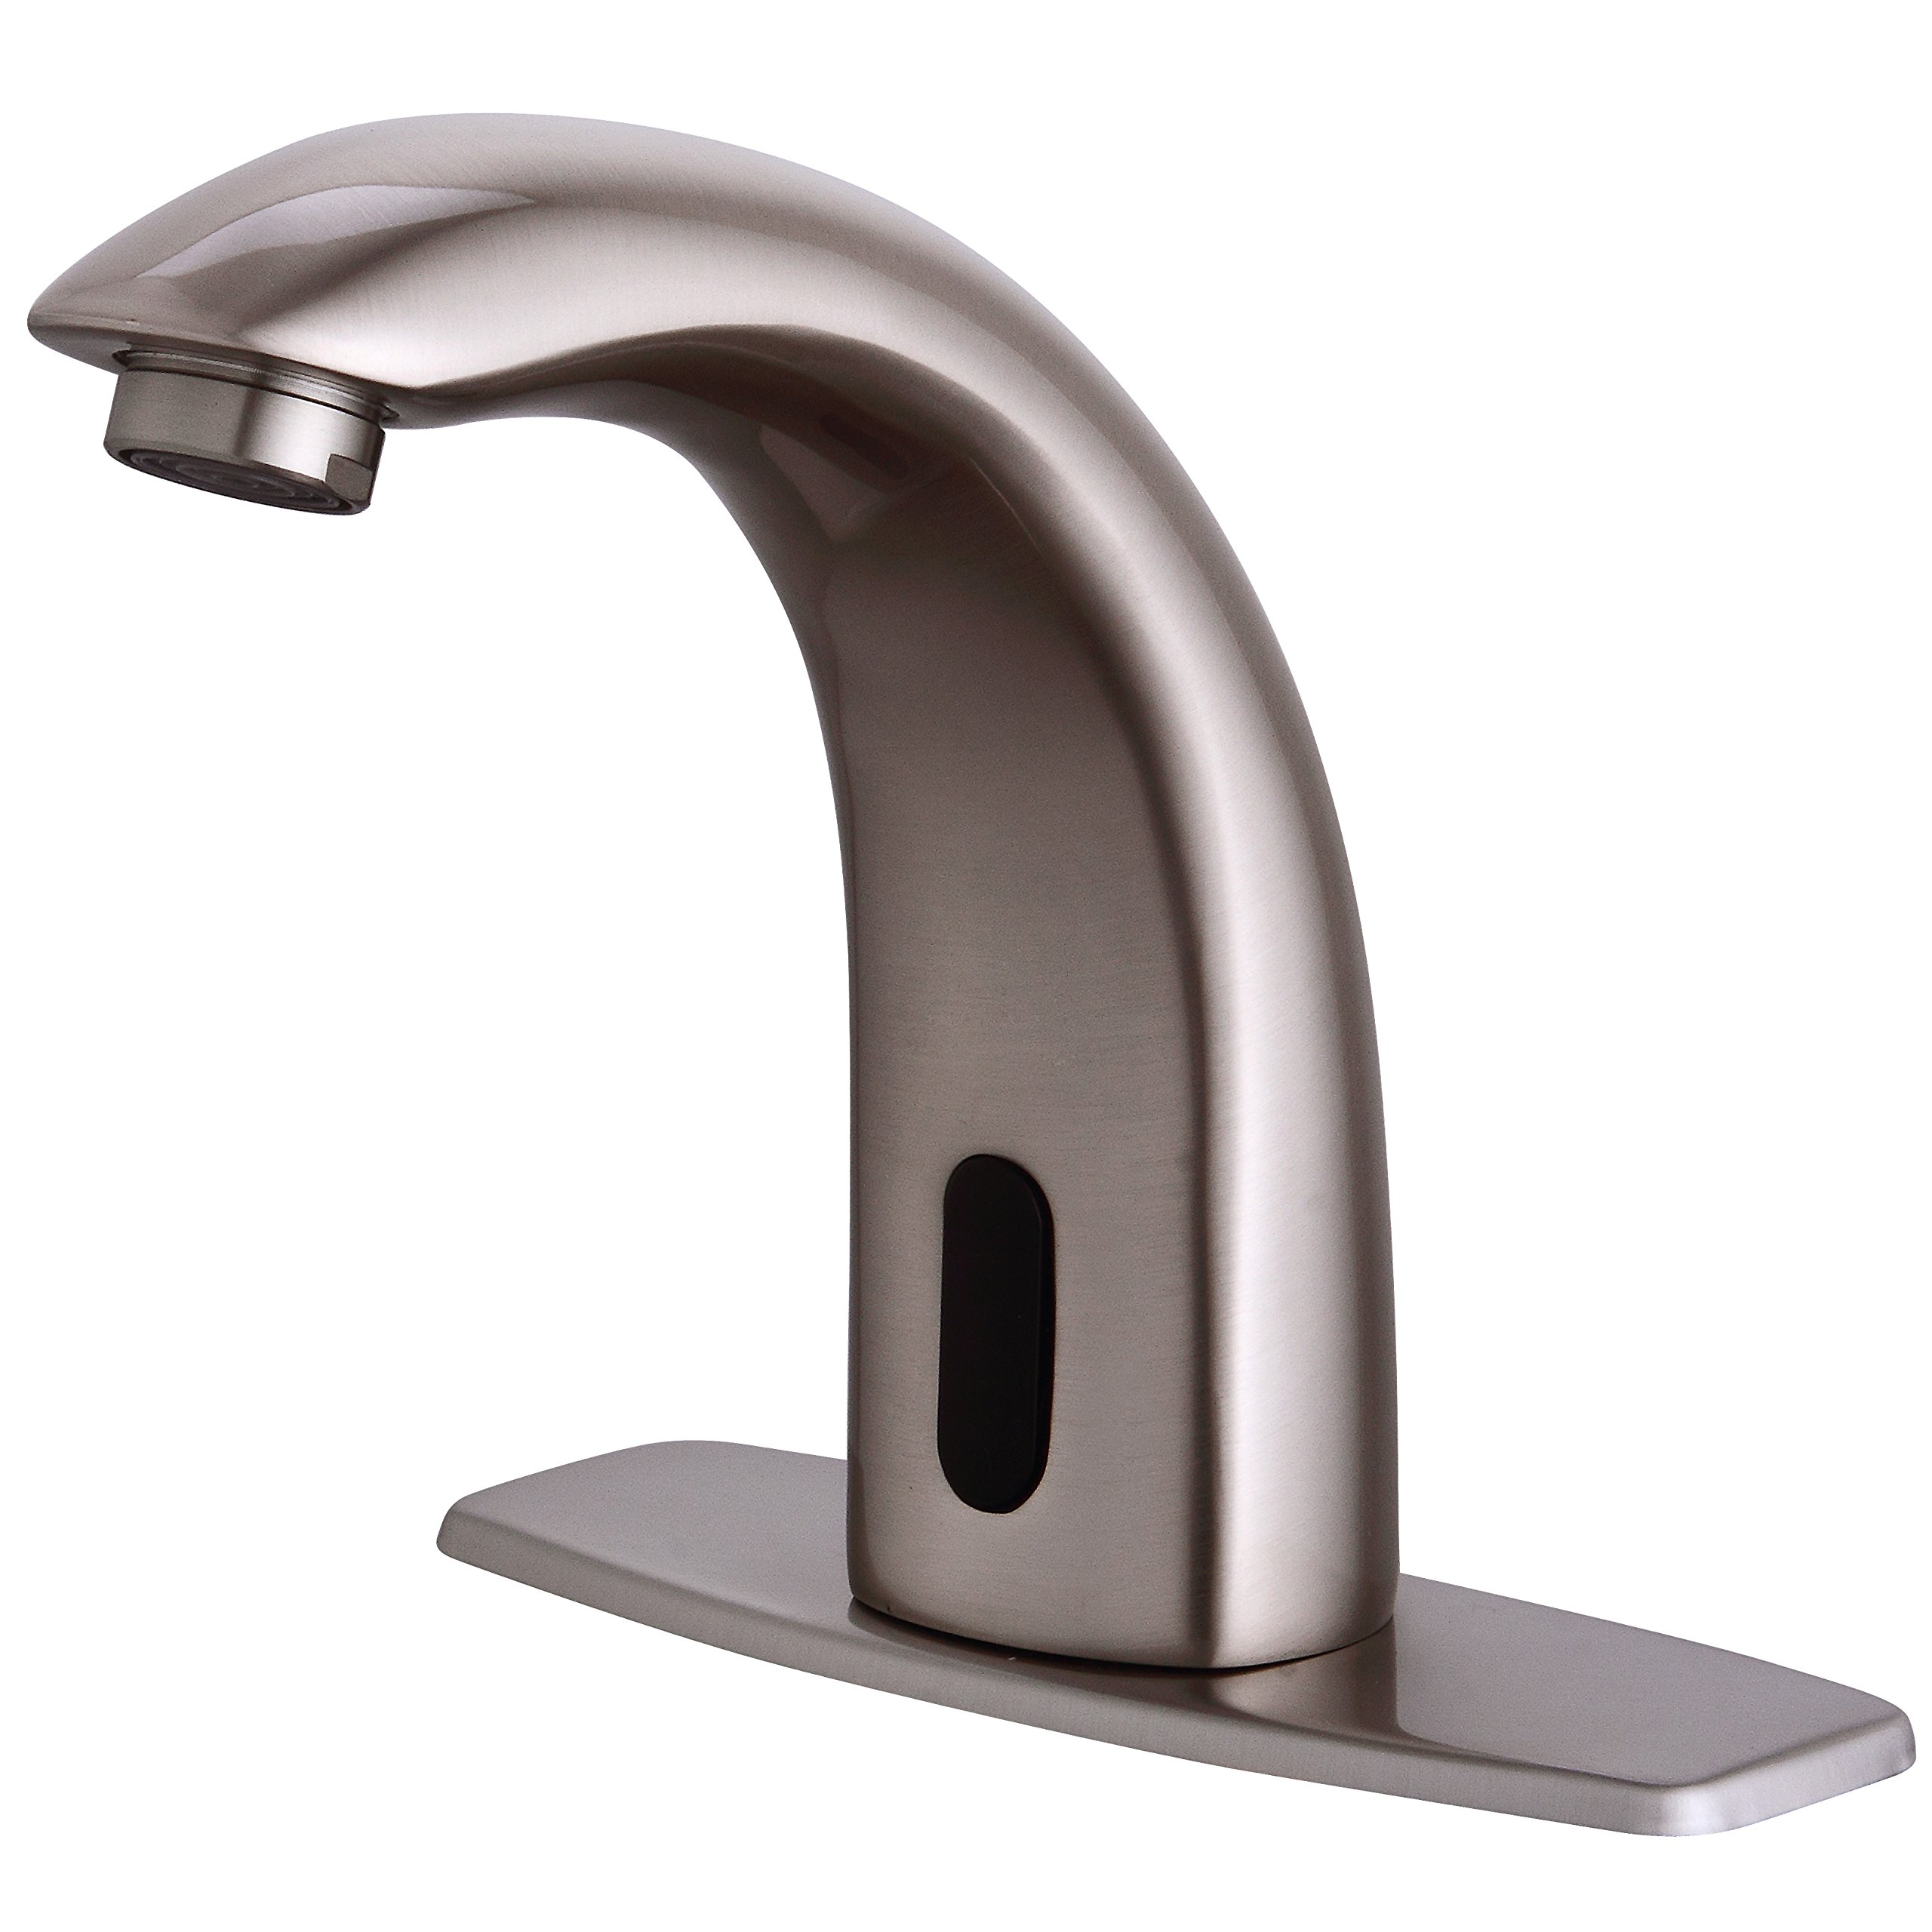 Fyeer Automatic Sensor Touchless Bathroom Sink Faucet with Hole Cover Deck Plate, Nickel Brush Finish, FN0103S